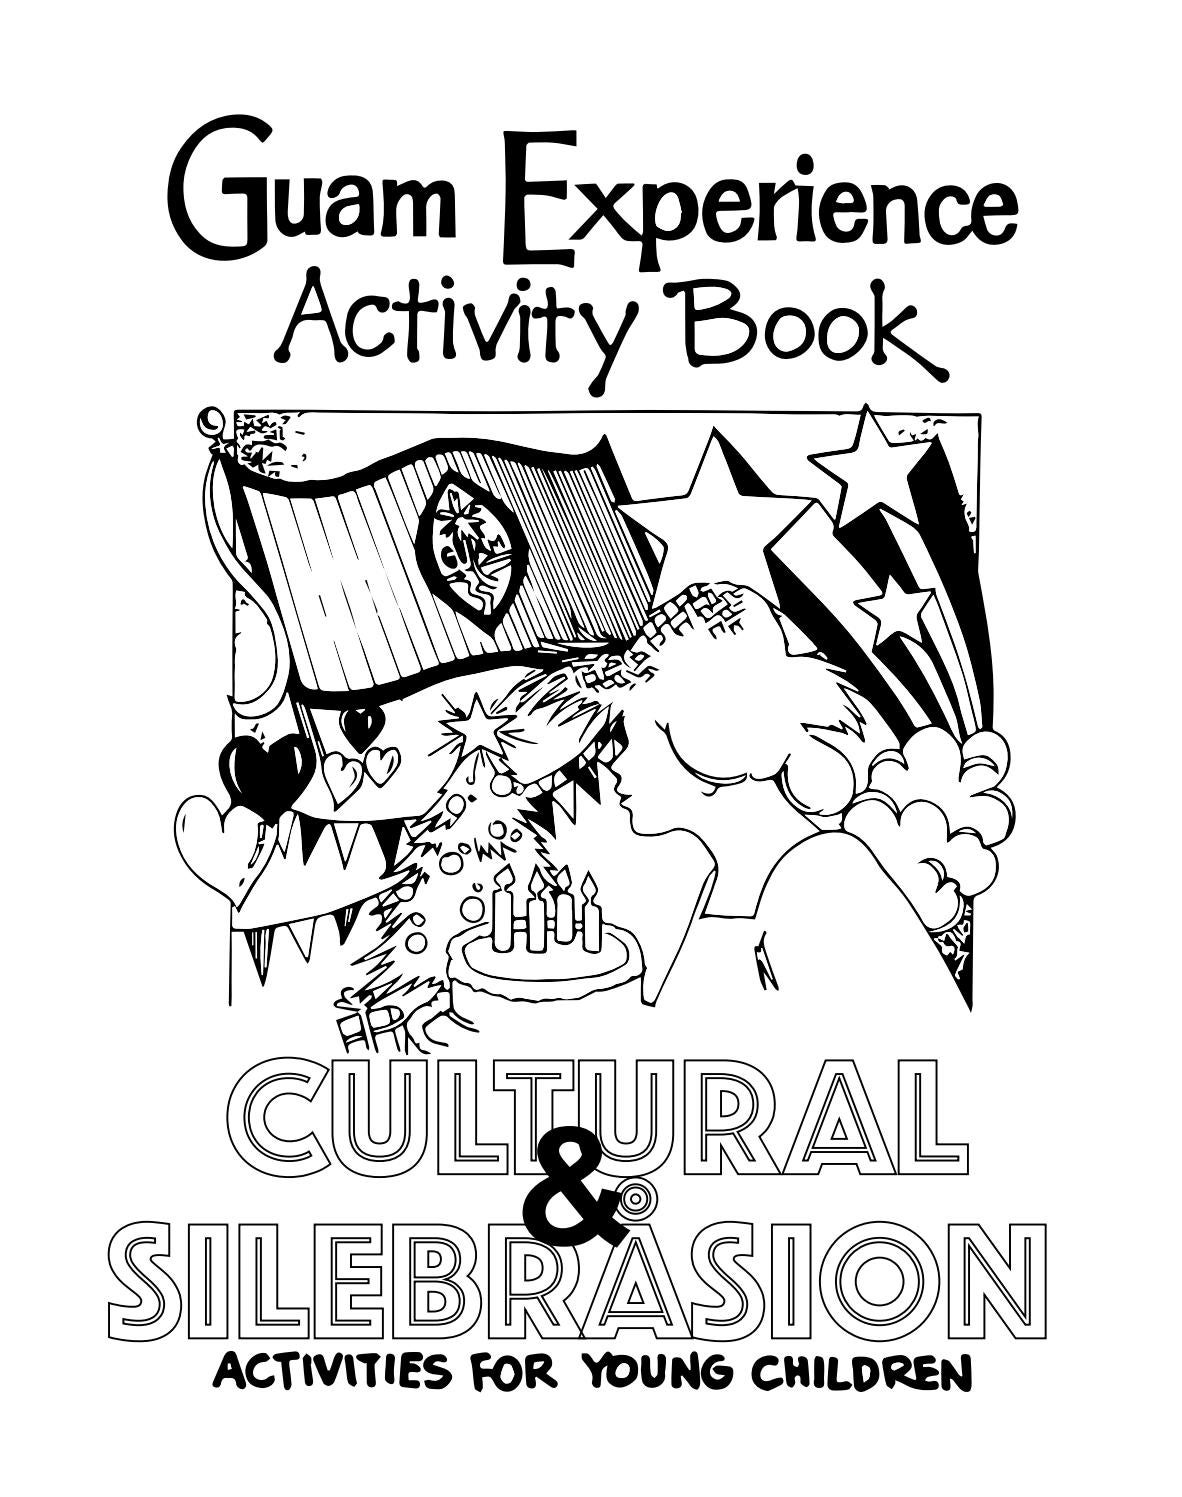 the guam experience activity book by gu edia issuu Nightlife in Tumon Guam